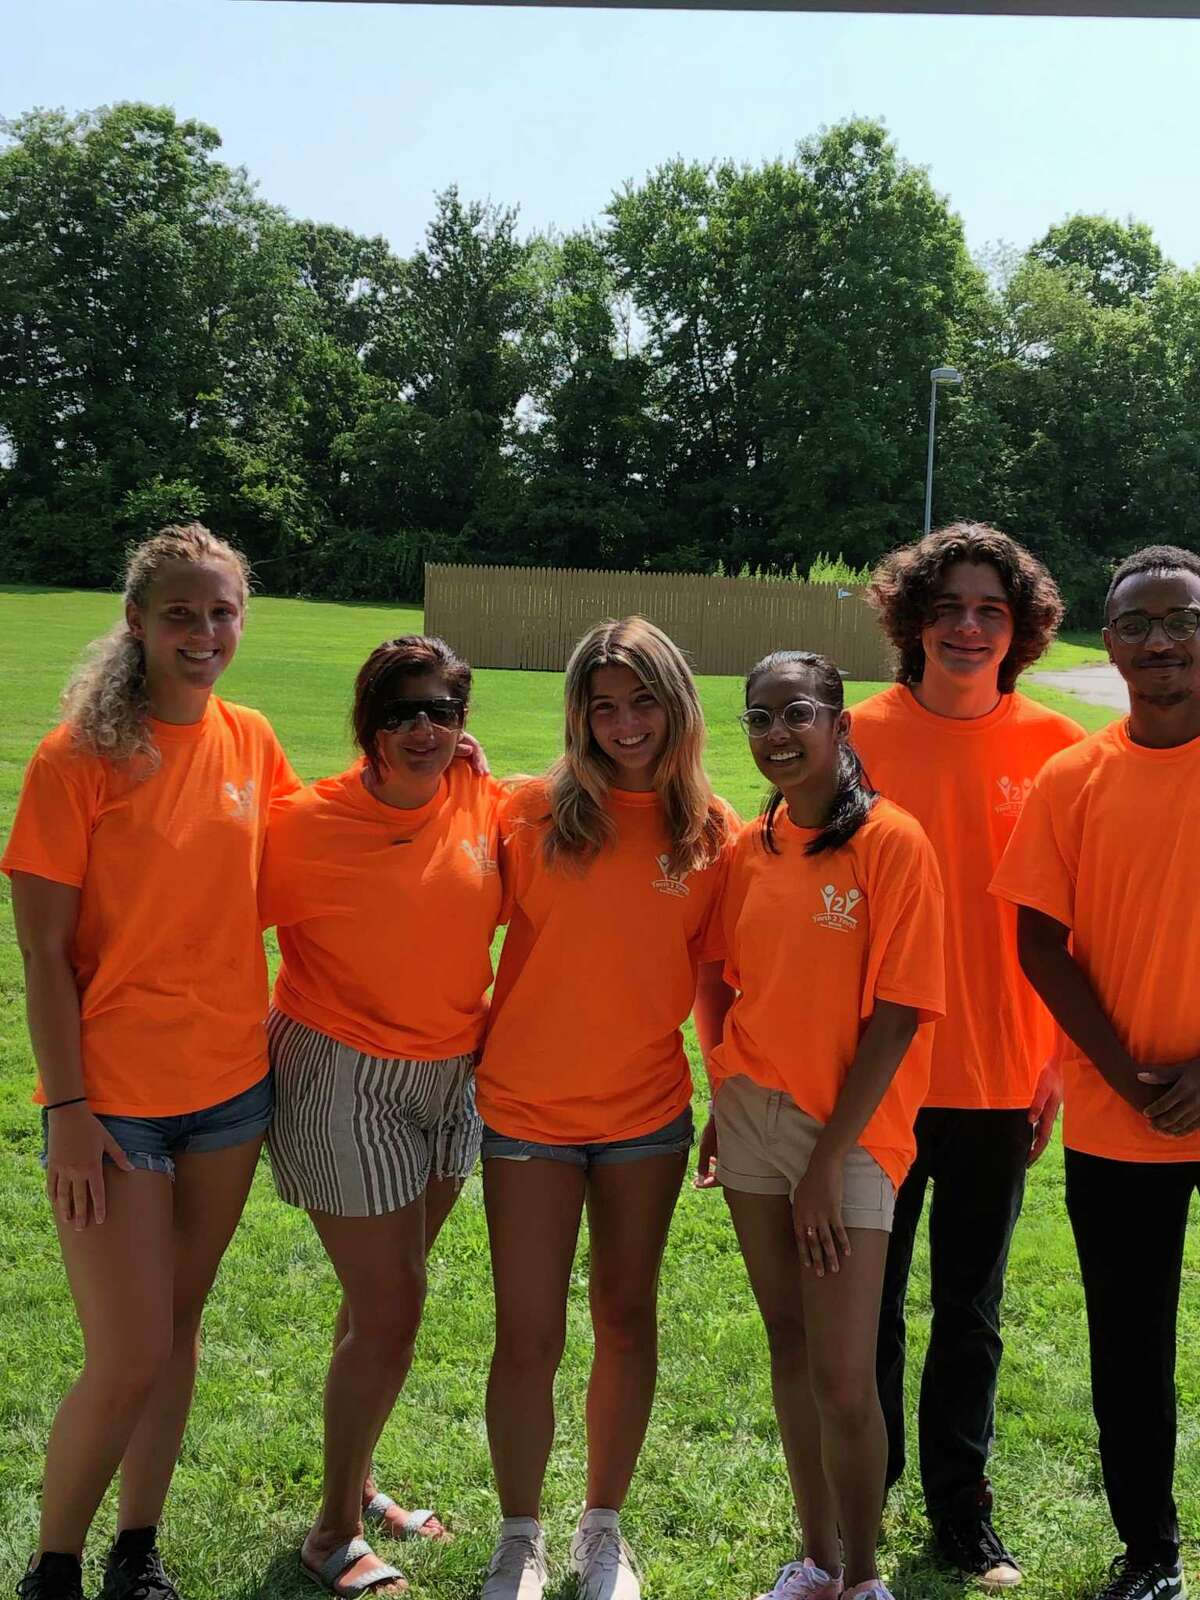 Youth to Youth counselors Julia Jacob, Silvia Rodriguez, Emma Jacob, Neja Jahanna, Danny Connolly and Jostin Cobb visited Mohegan schools summer playground and presented a keep-your-body-safe lesson.